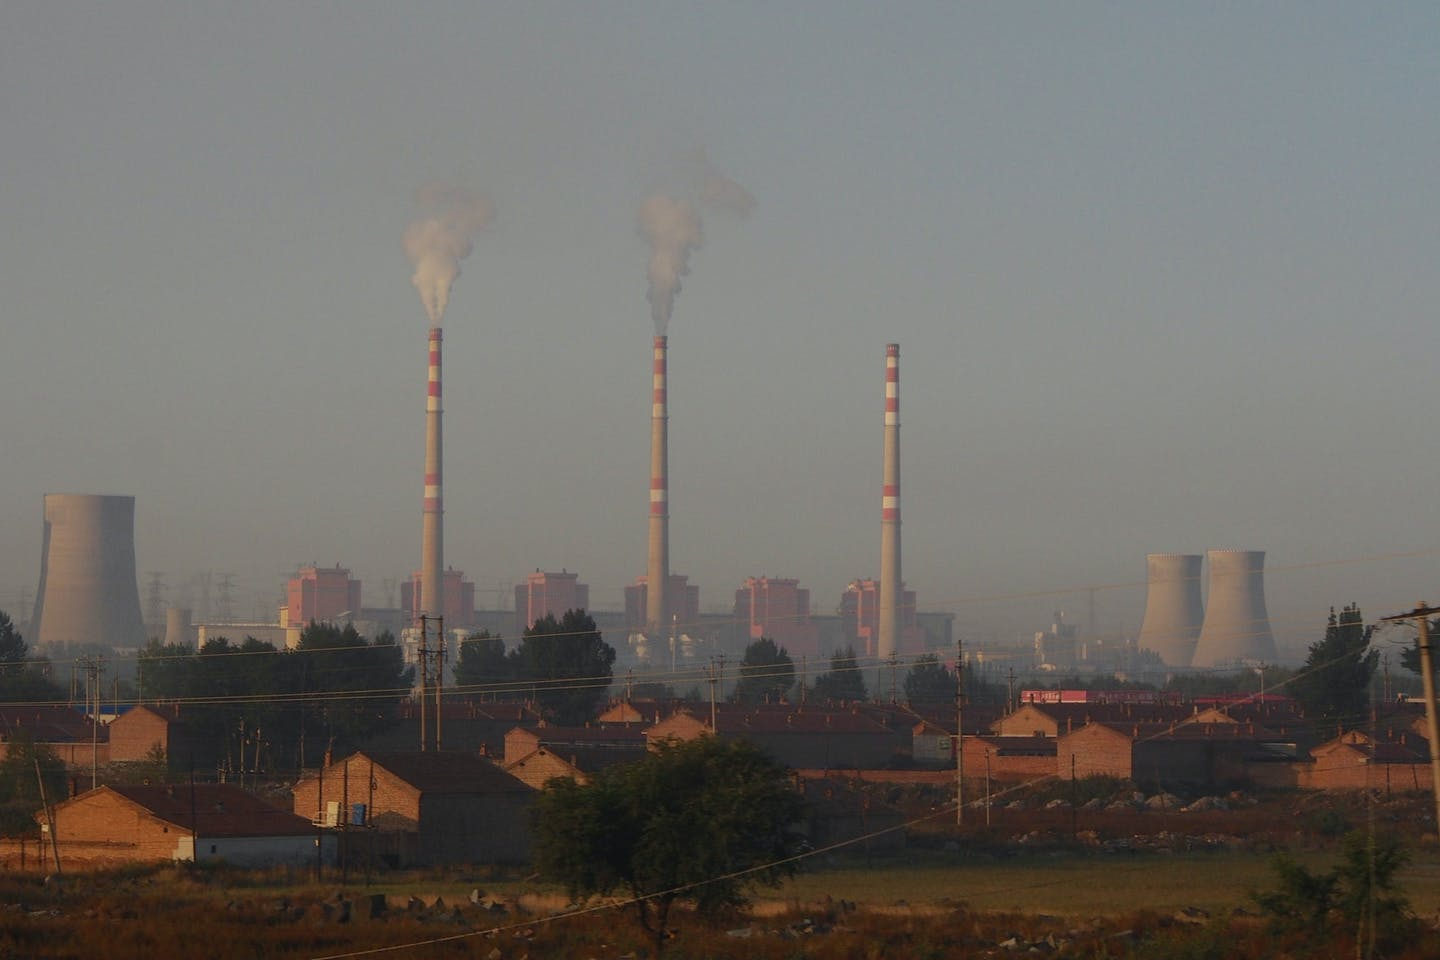 emissions from power plants in China